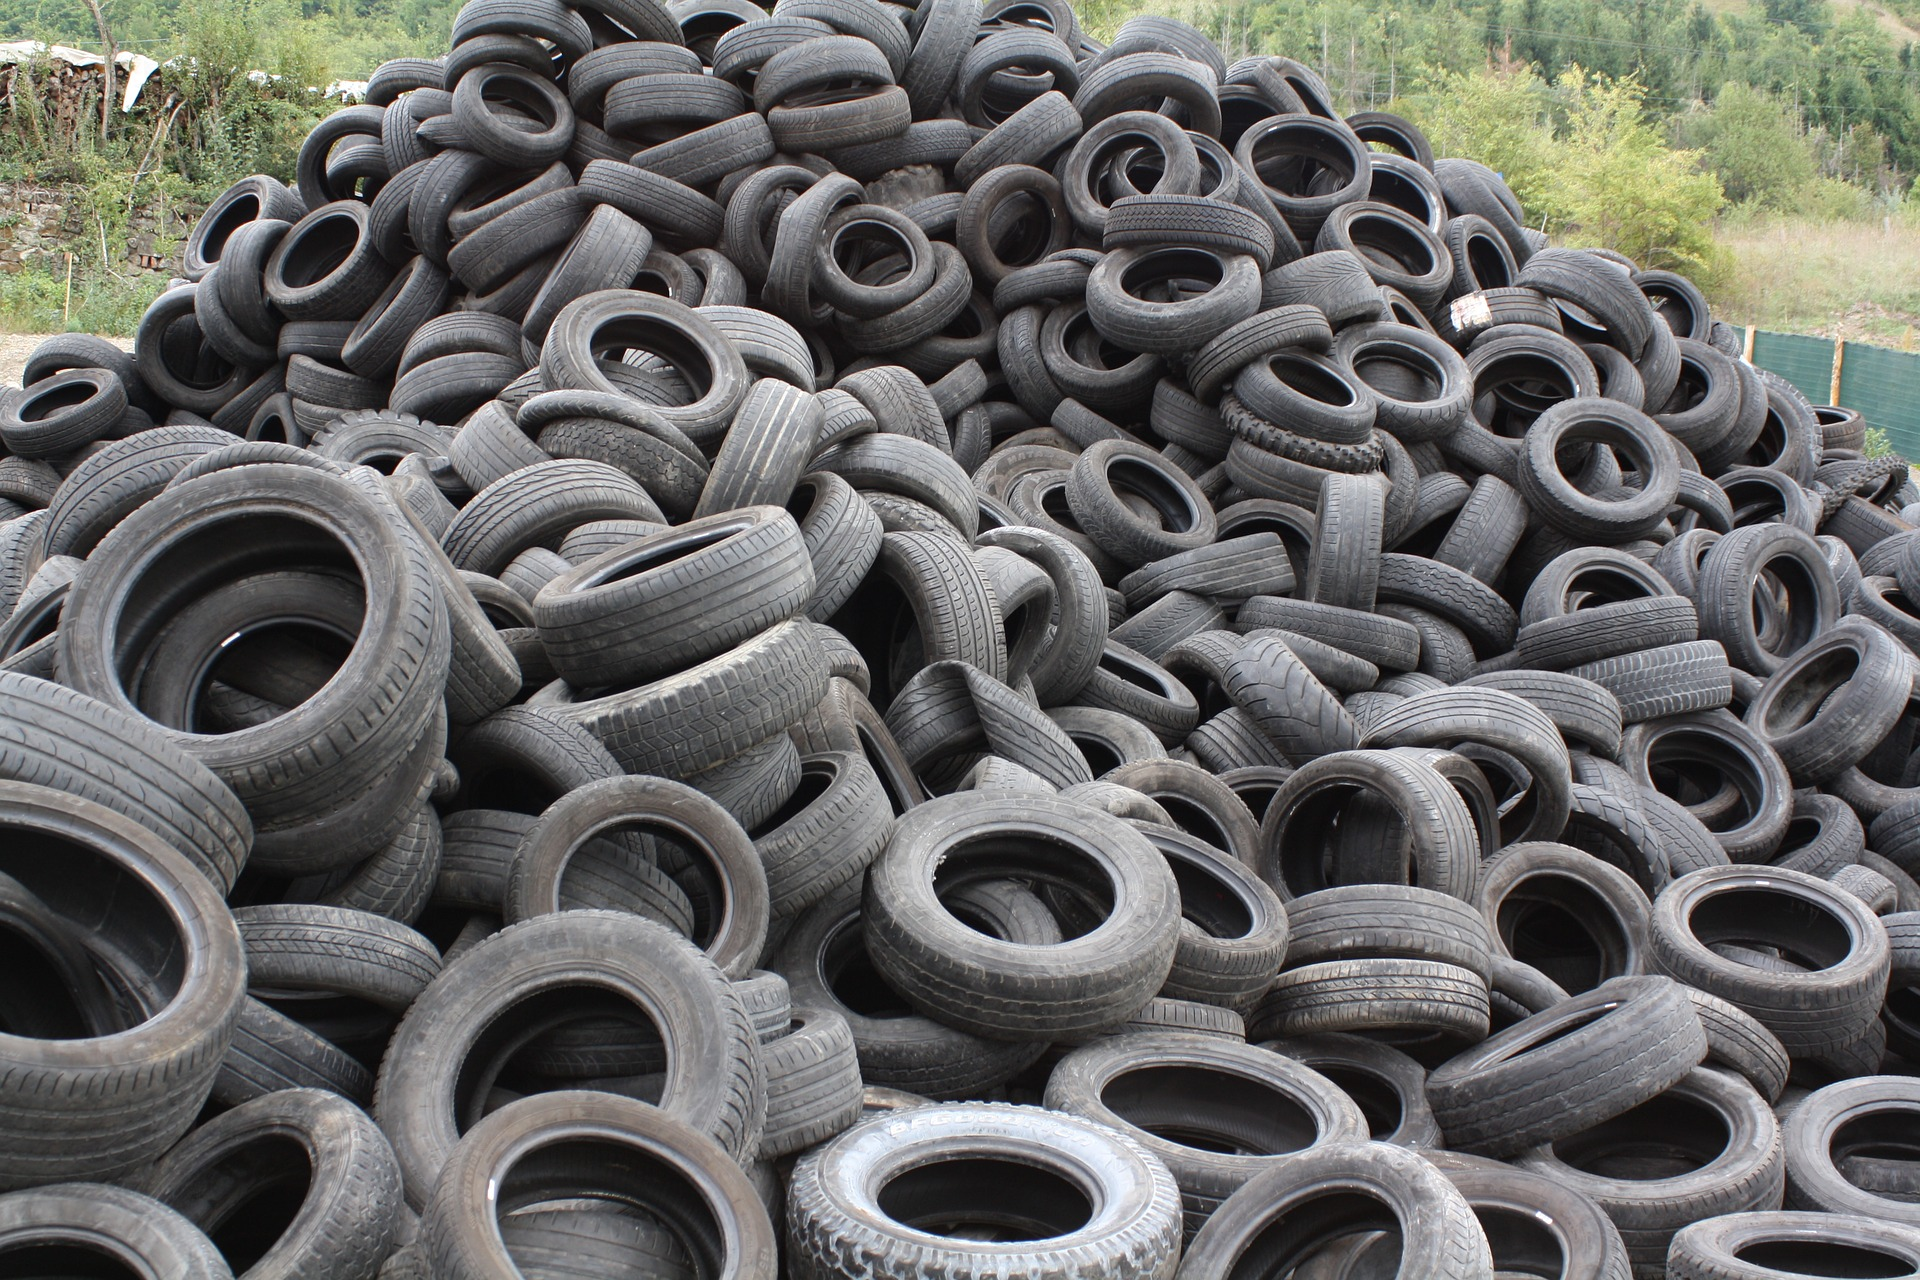 Rubber/ Tire Recycling Photo